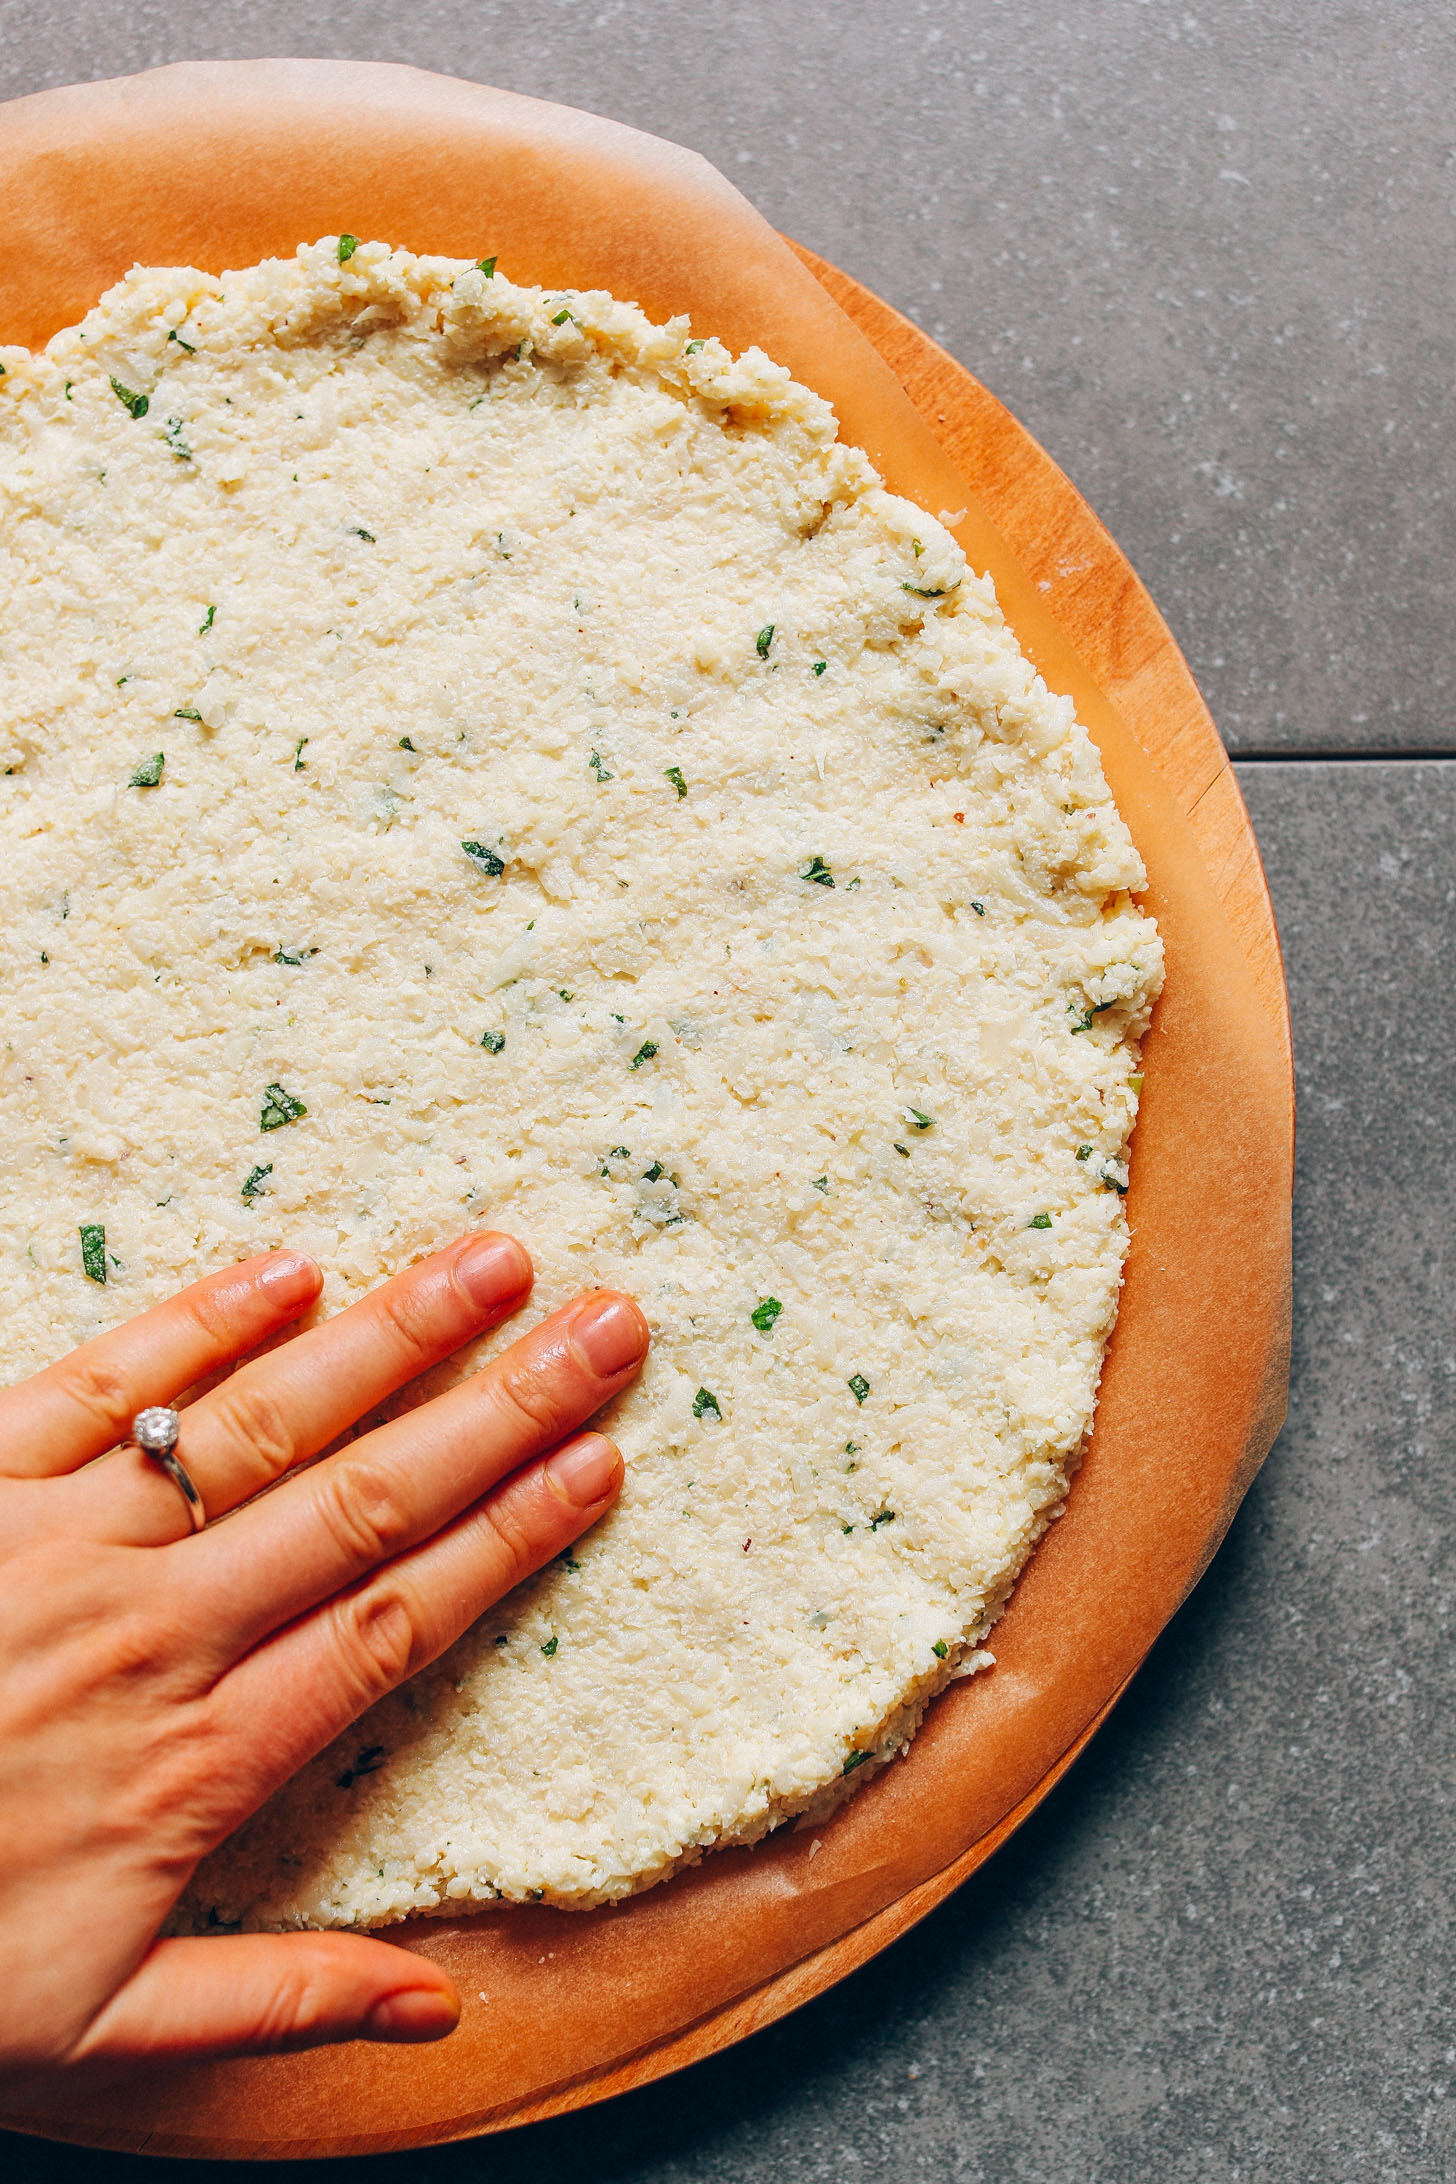 Nicely flattened Gluten-Free Cauliflower Pizza Crust dough on a parchment-lined pizza tray